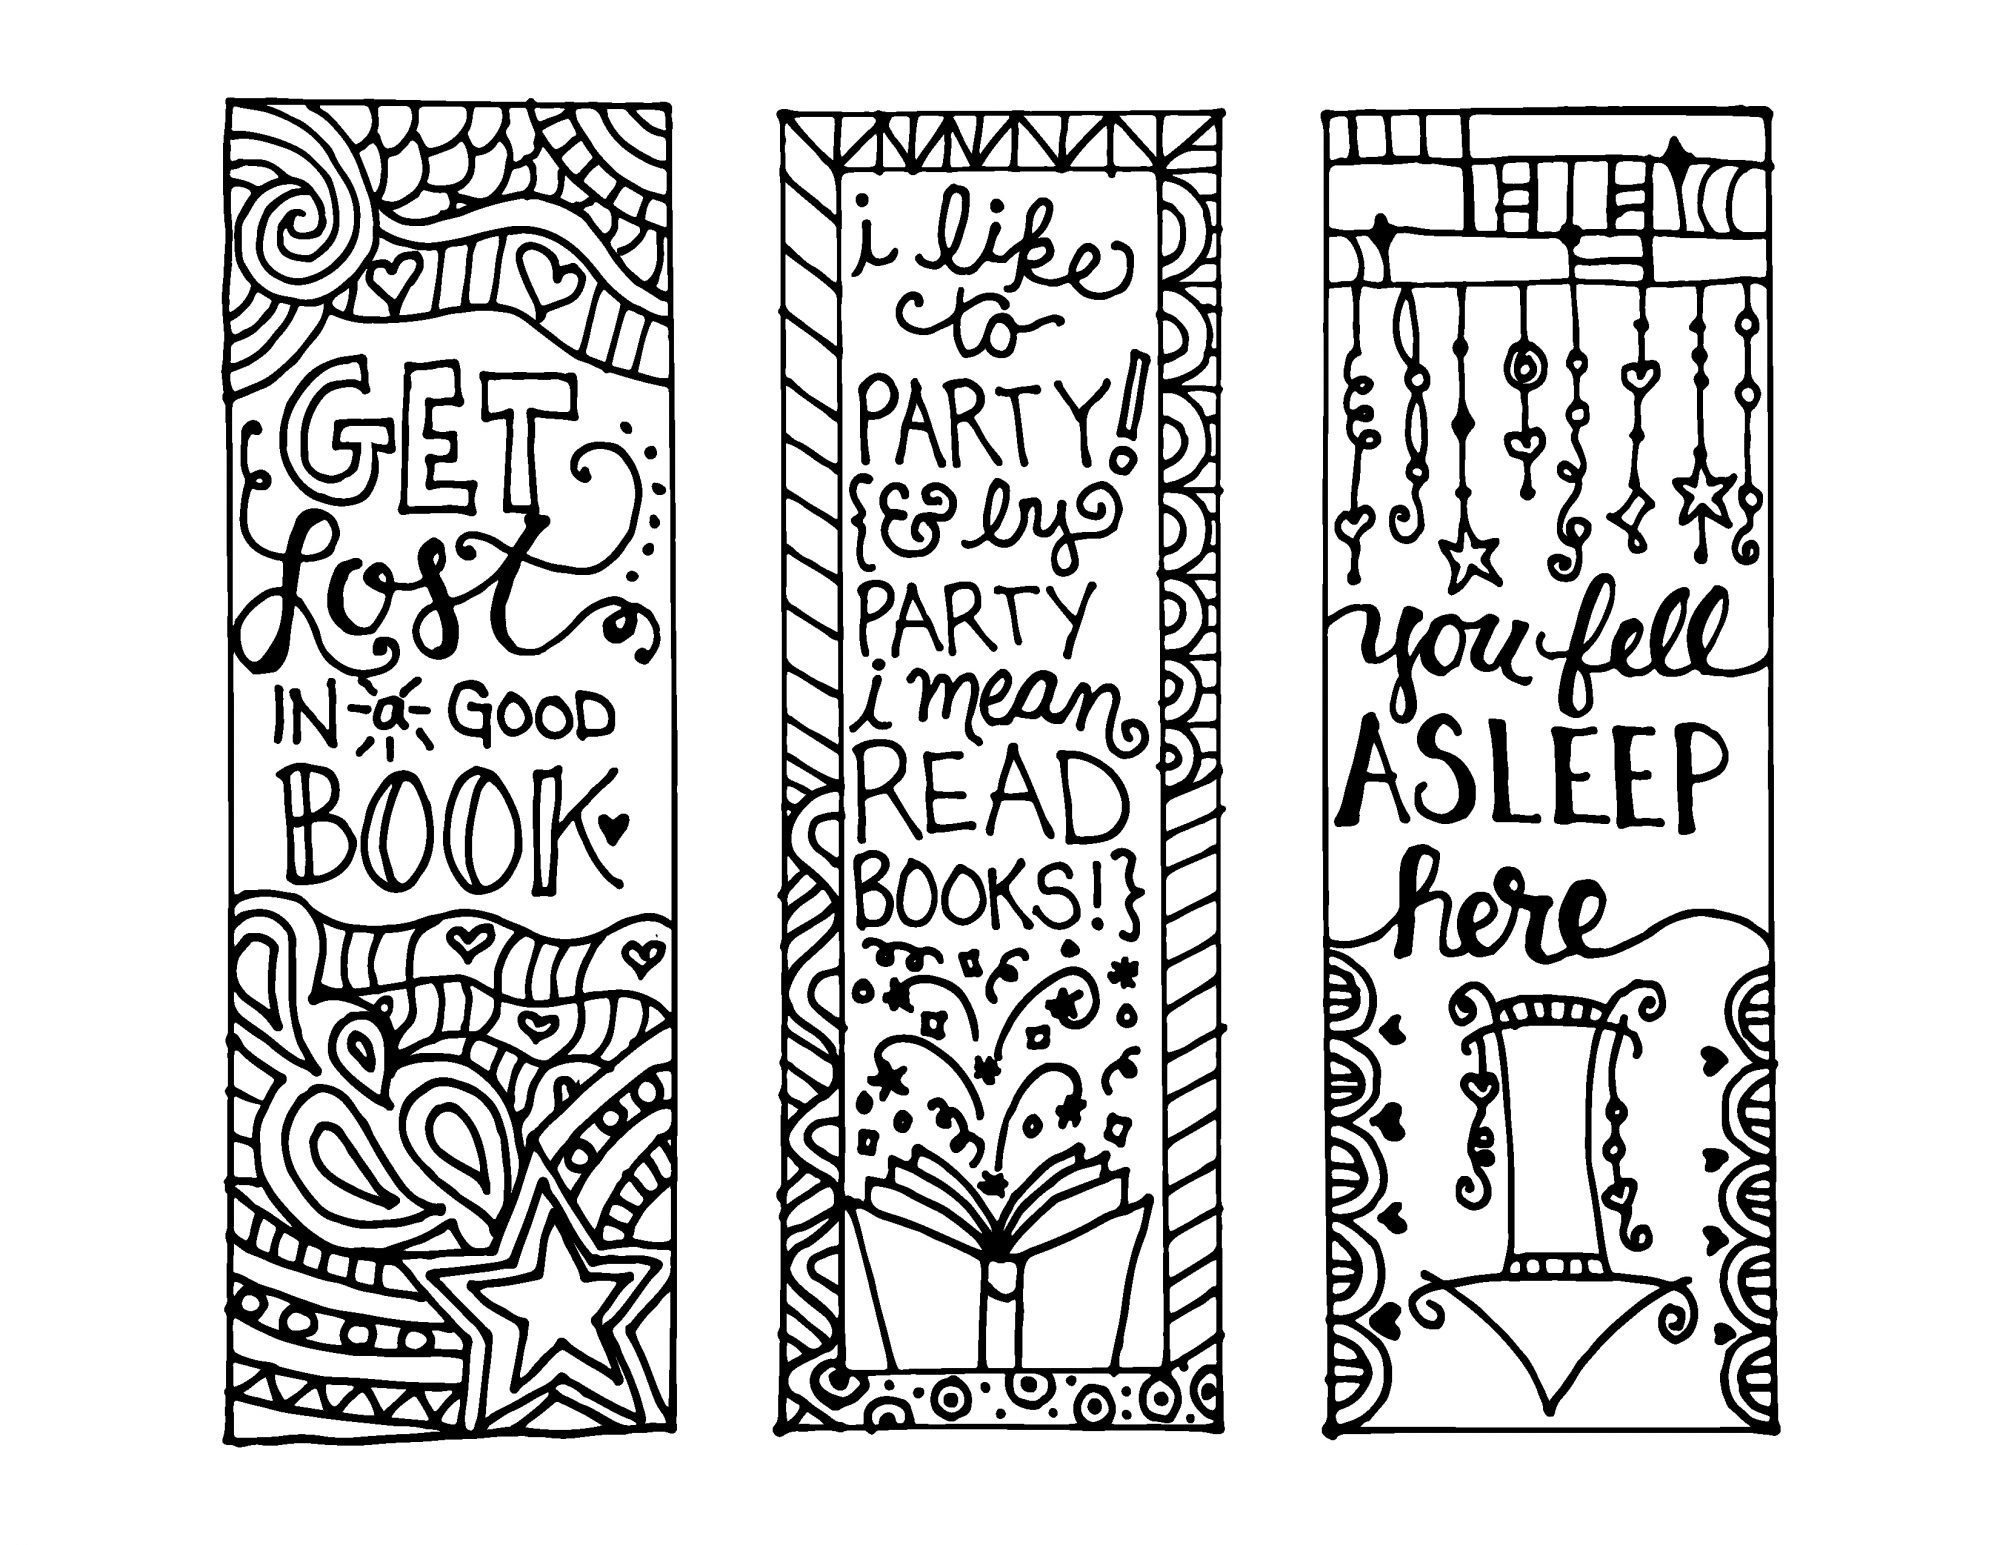 free printable reading bookmarks black and white for adult